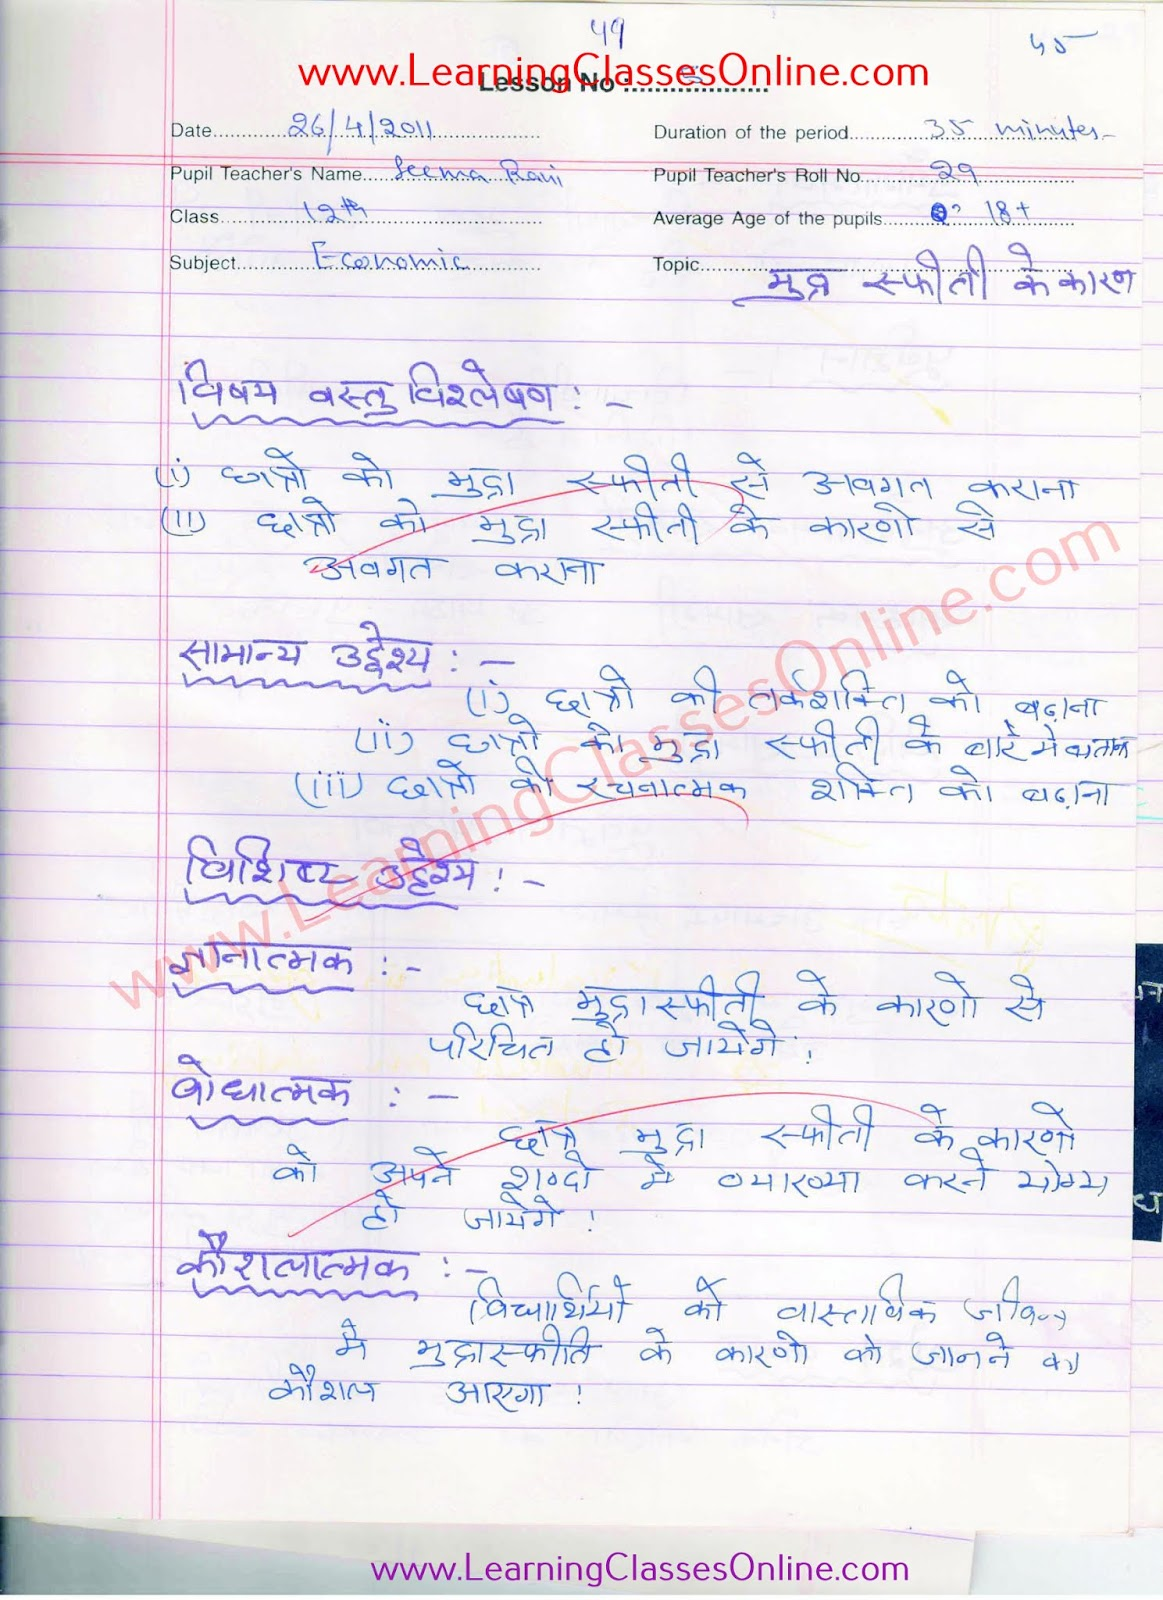 Economics Lesson Plan in Hindi on Inflation ( मुद्रा स्फीति ) for Class 9 teachers free download pdf